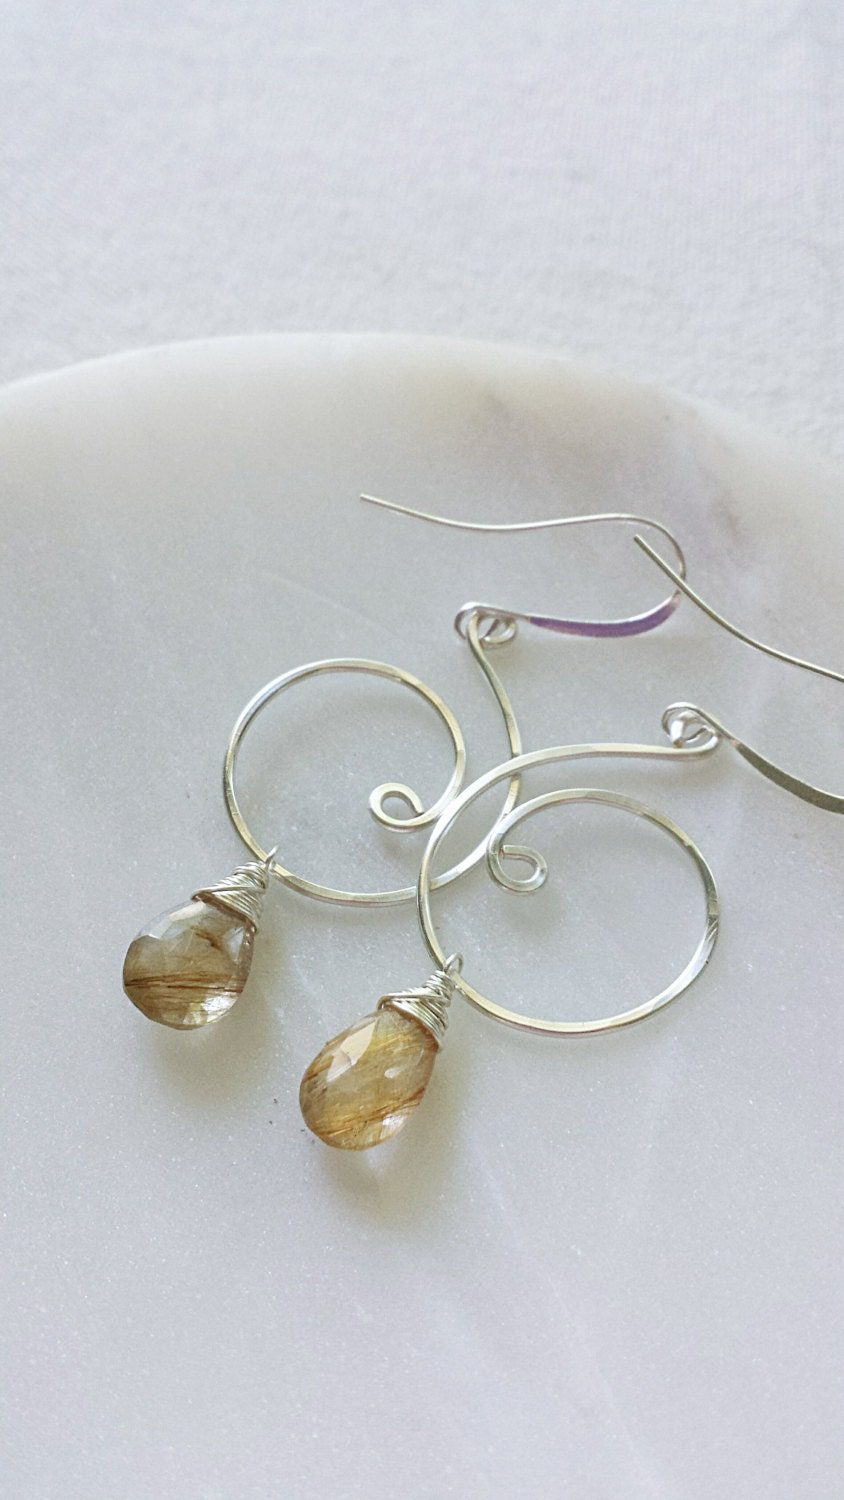 Rutilated quartz earrings gold rutilated quartz jewelry for Golden rutilated quartz jewelry